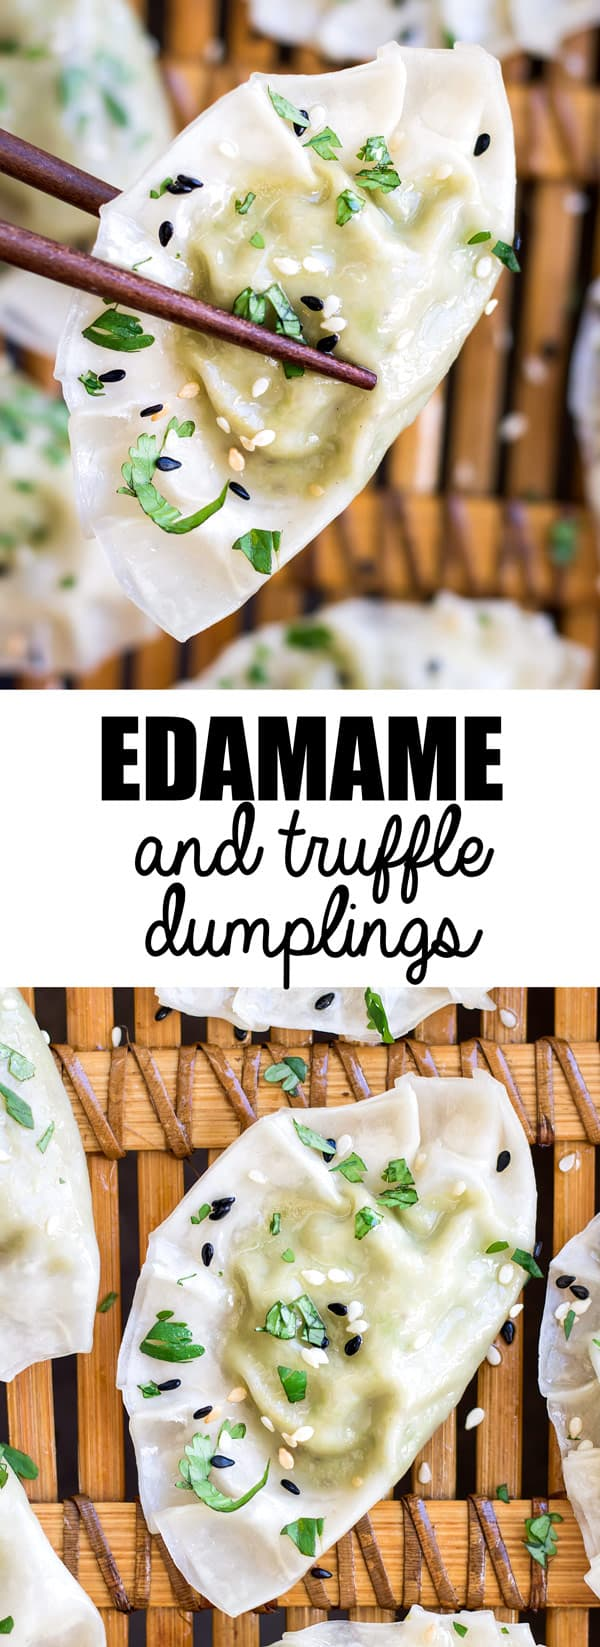 These Edamame and truffle dumplings are a delicious and healthy appetizer or snack recipe! You'll love how easy they are to make too!